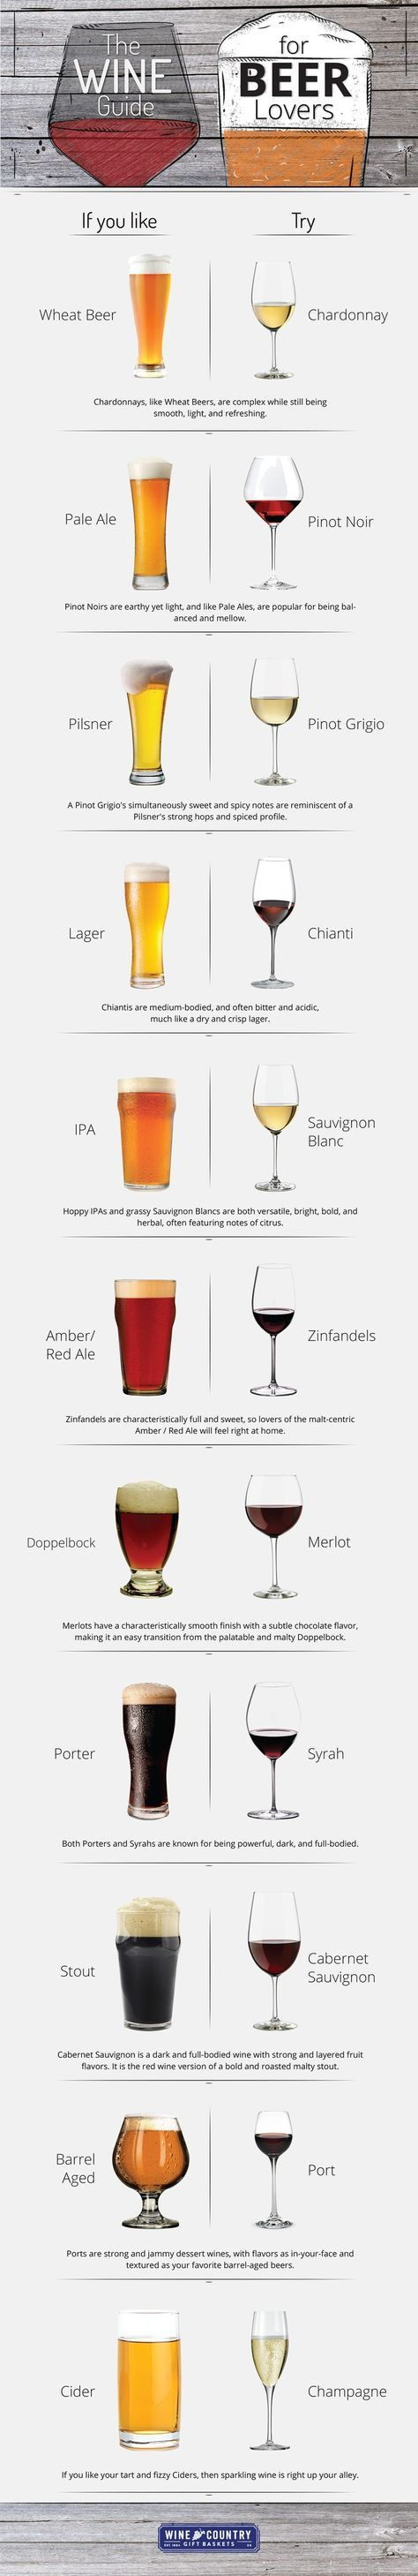 The Wine Guide For Beer Lovers Infographic ワインチャート クラフトビール お酒